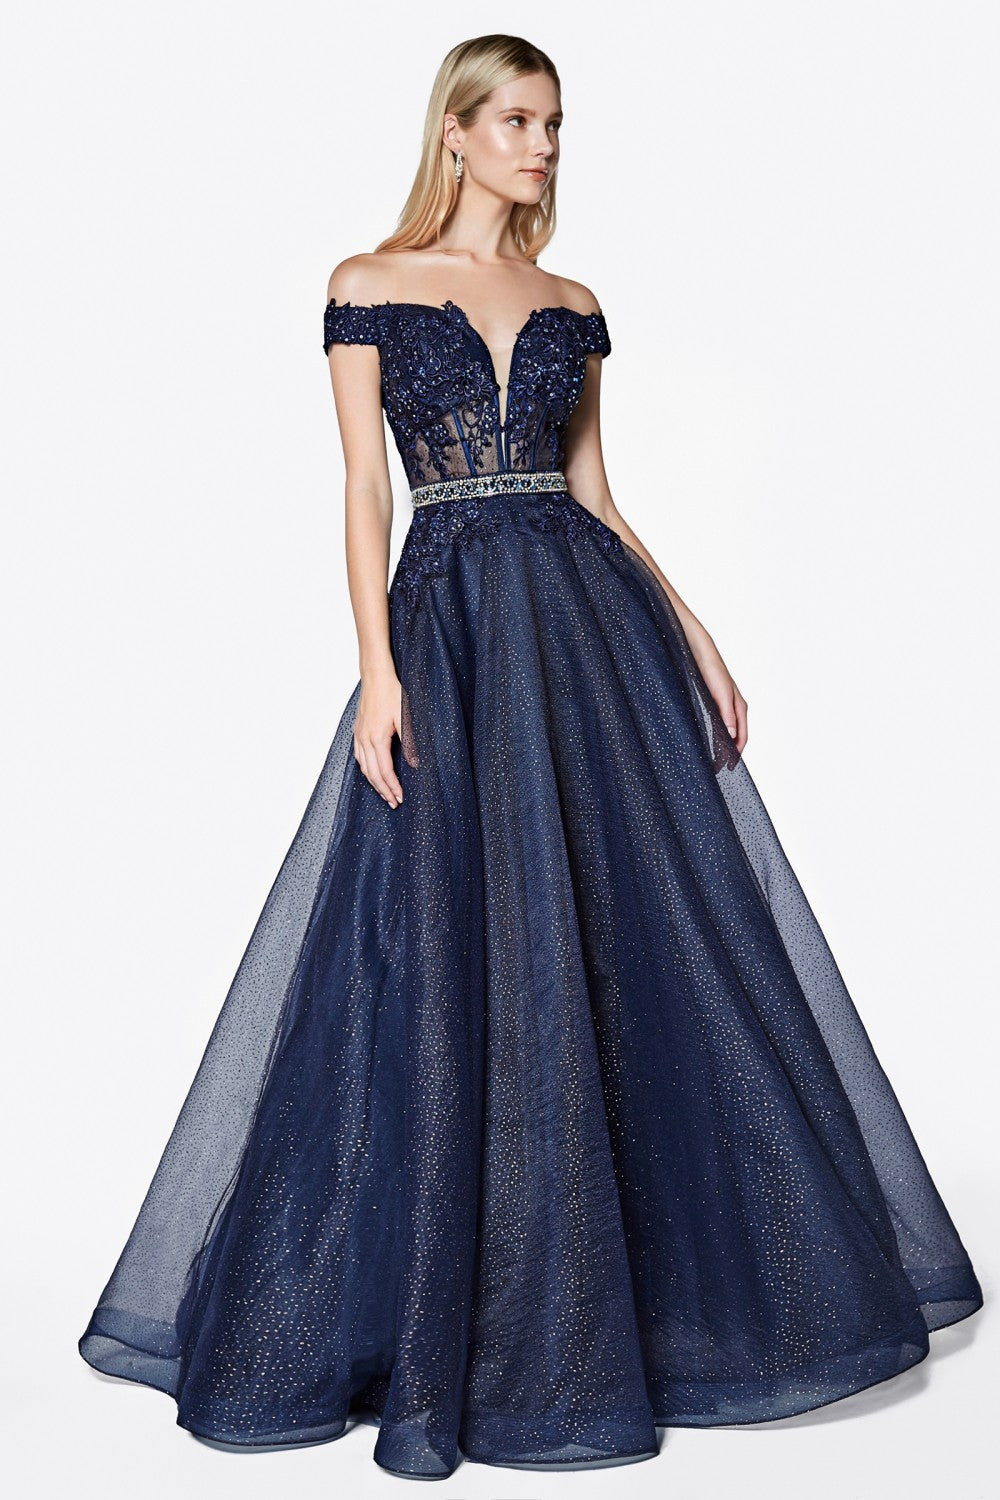 Off The Shoulder Ball Gown With Beaded Belt And Glittered Lace Details